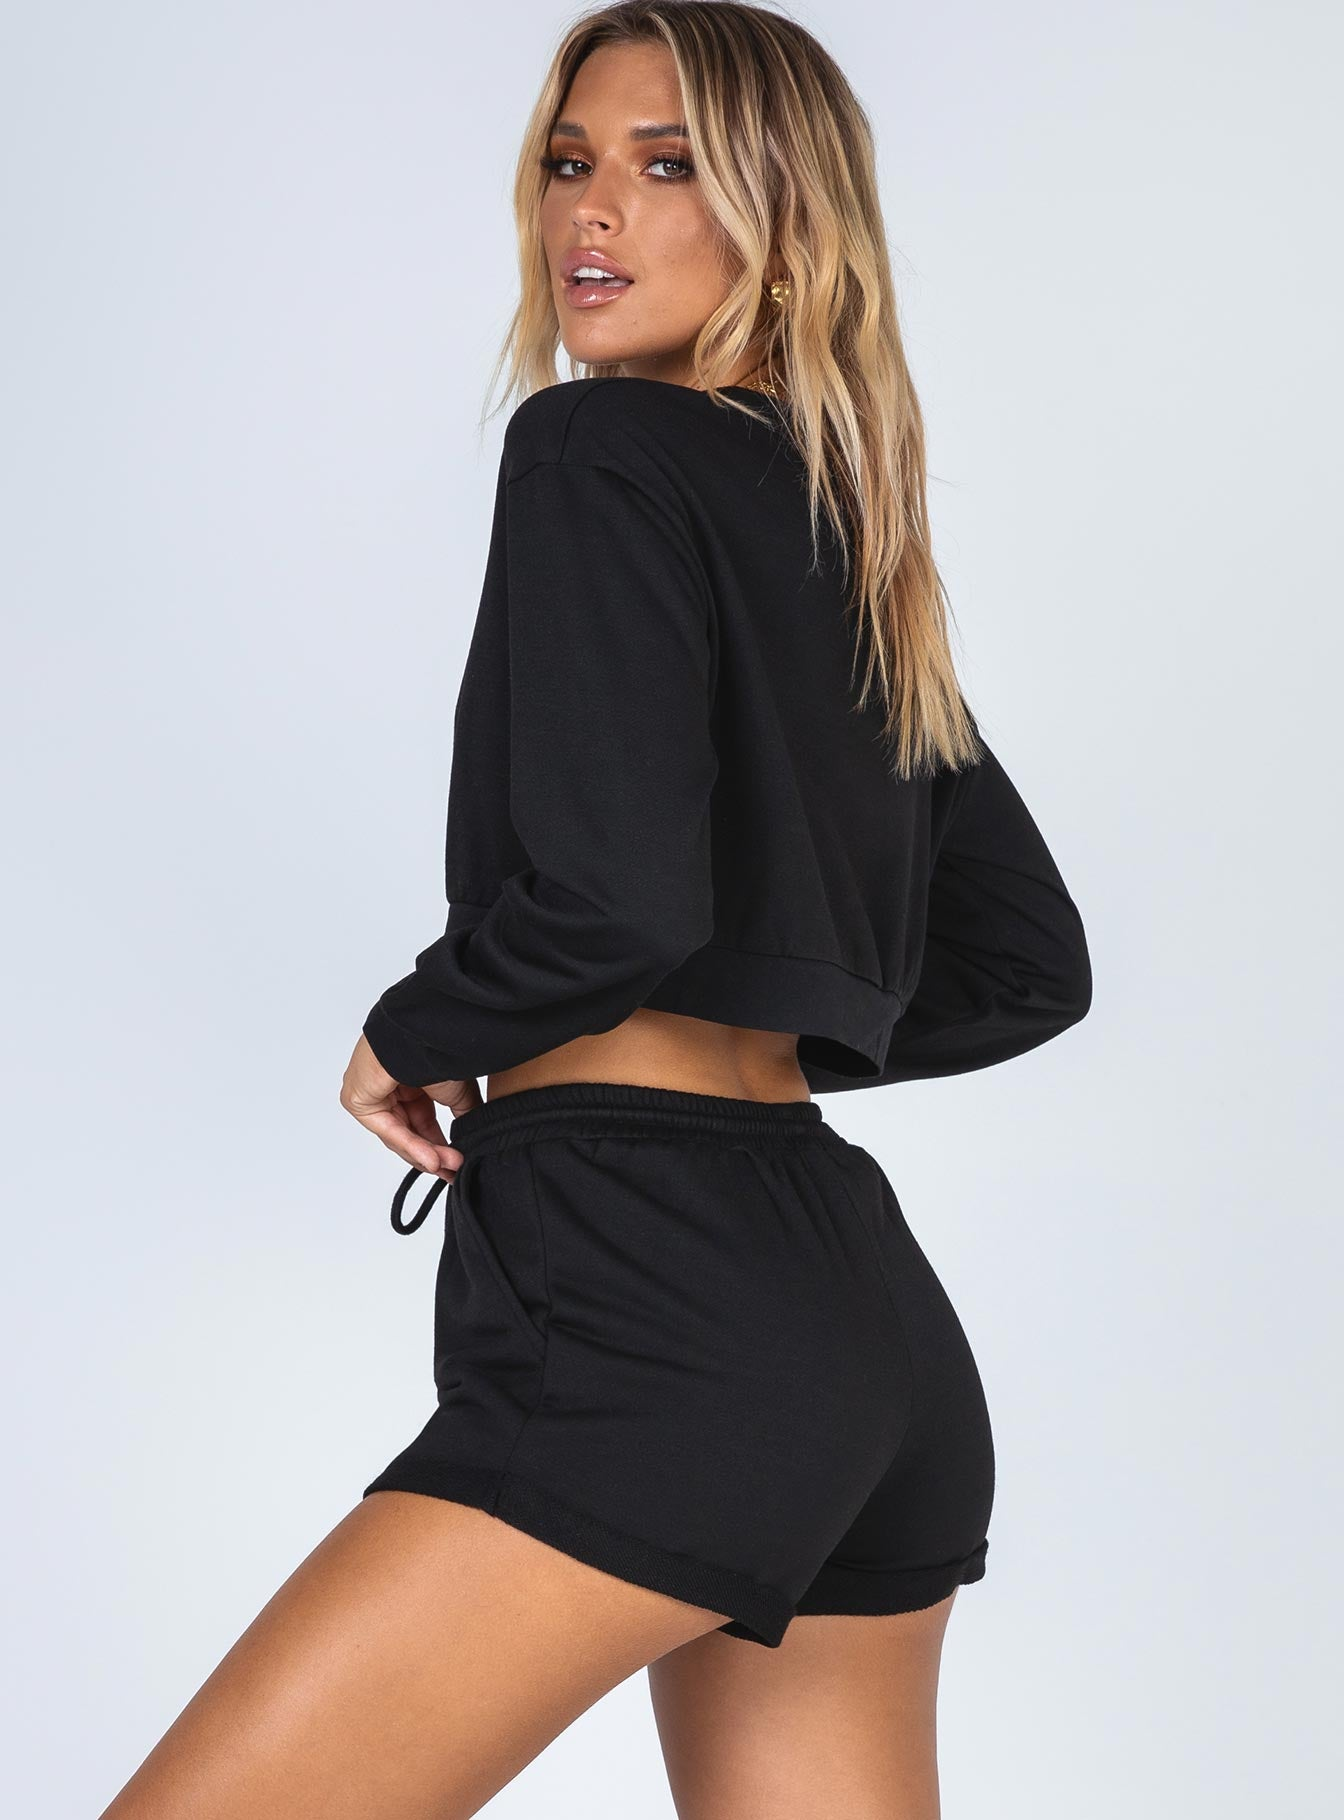 Rise & Lounge Shorts Black